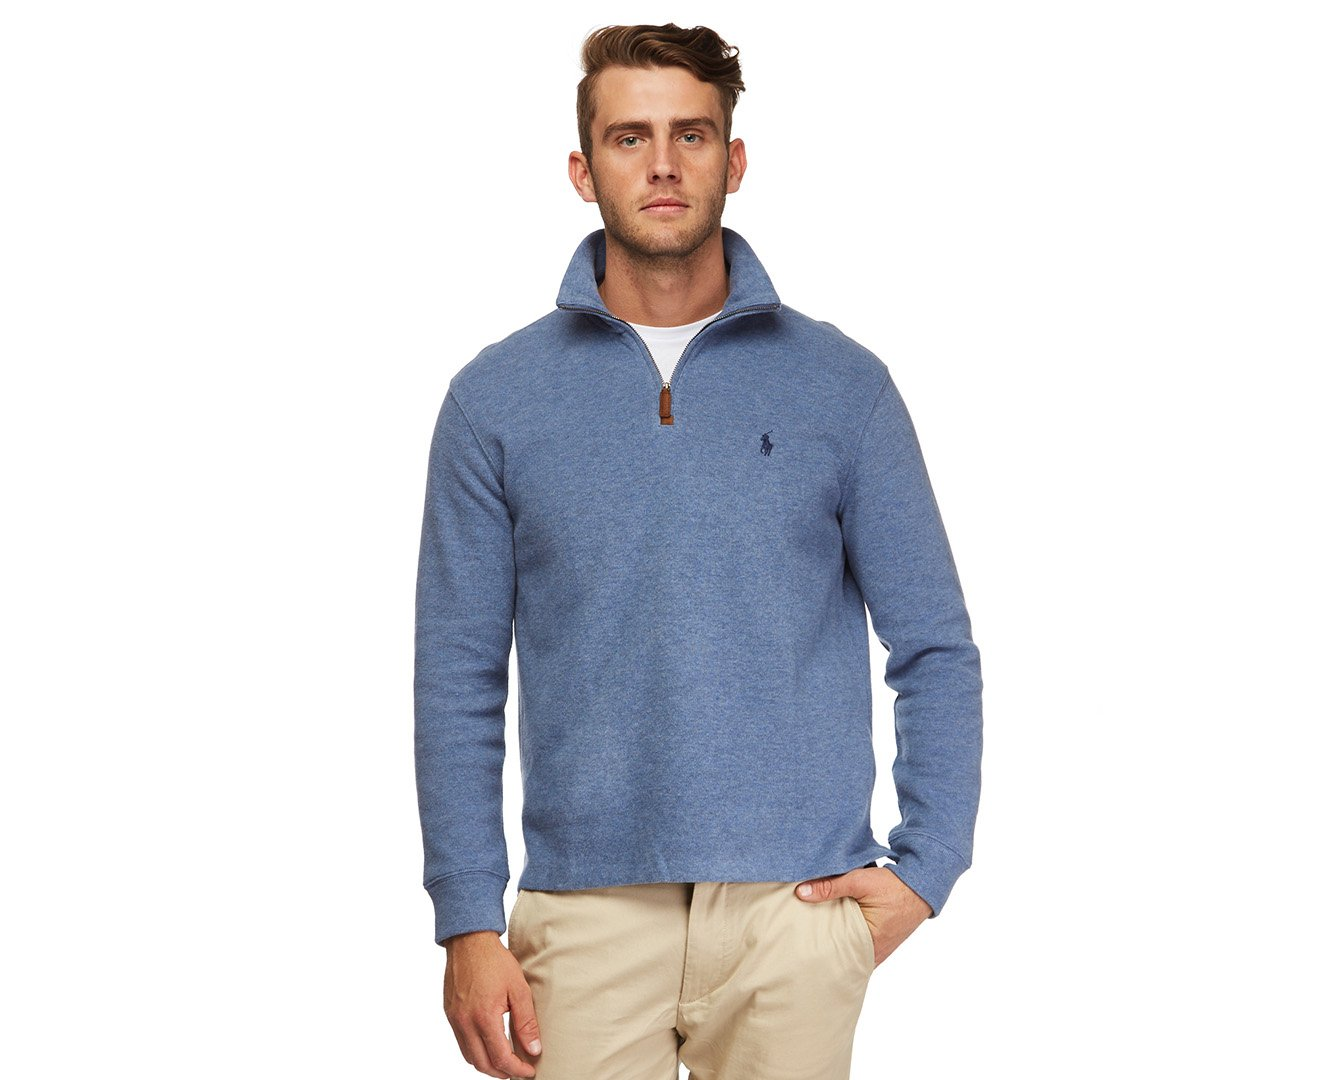 Polo Ralph Lauren Men's Half Zip French Rib Cotton Sweater (M,  Lt Blue/Navy Pony)